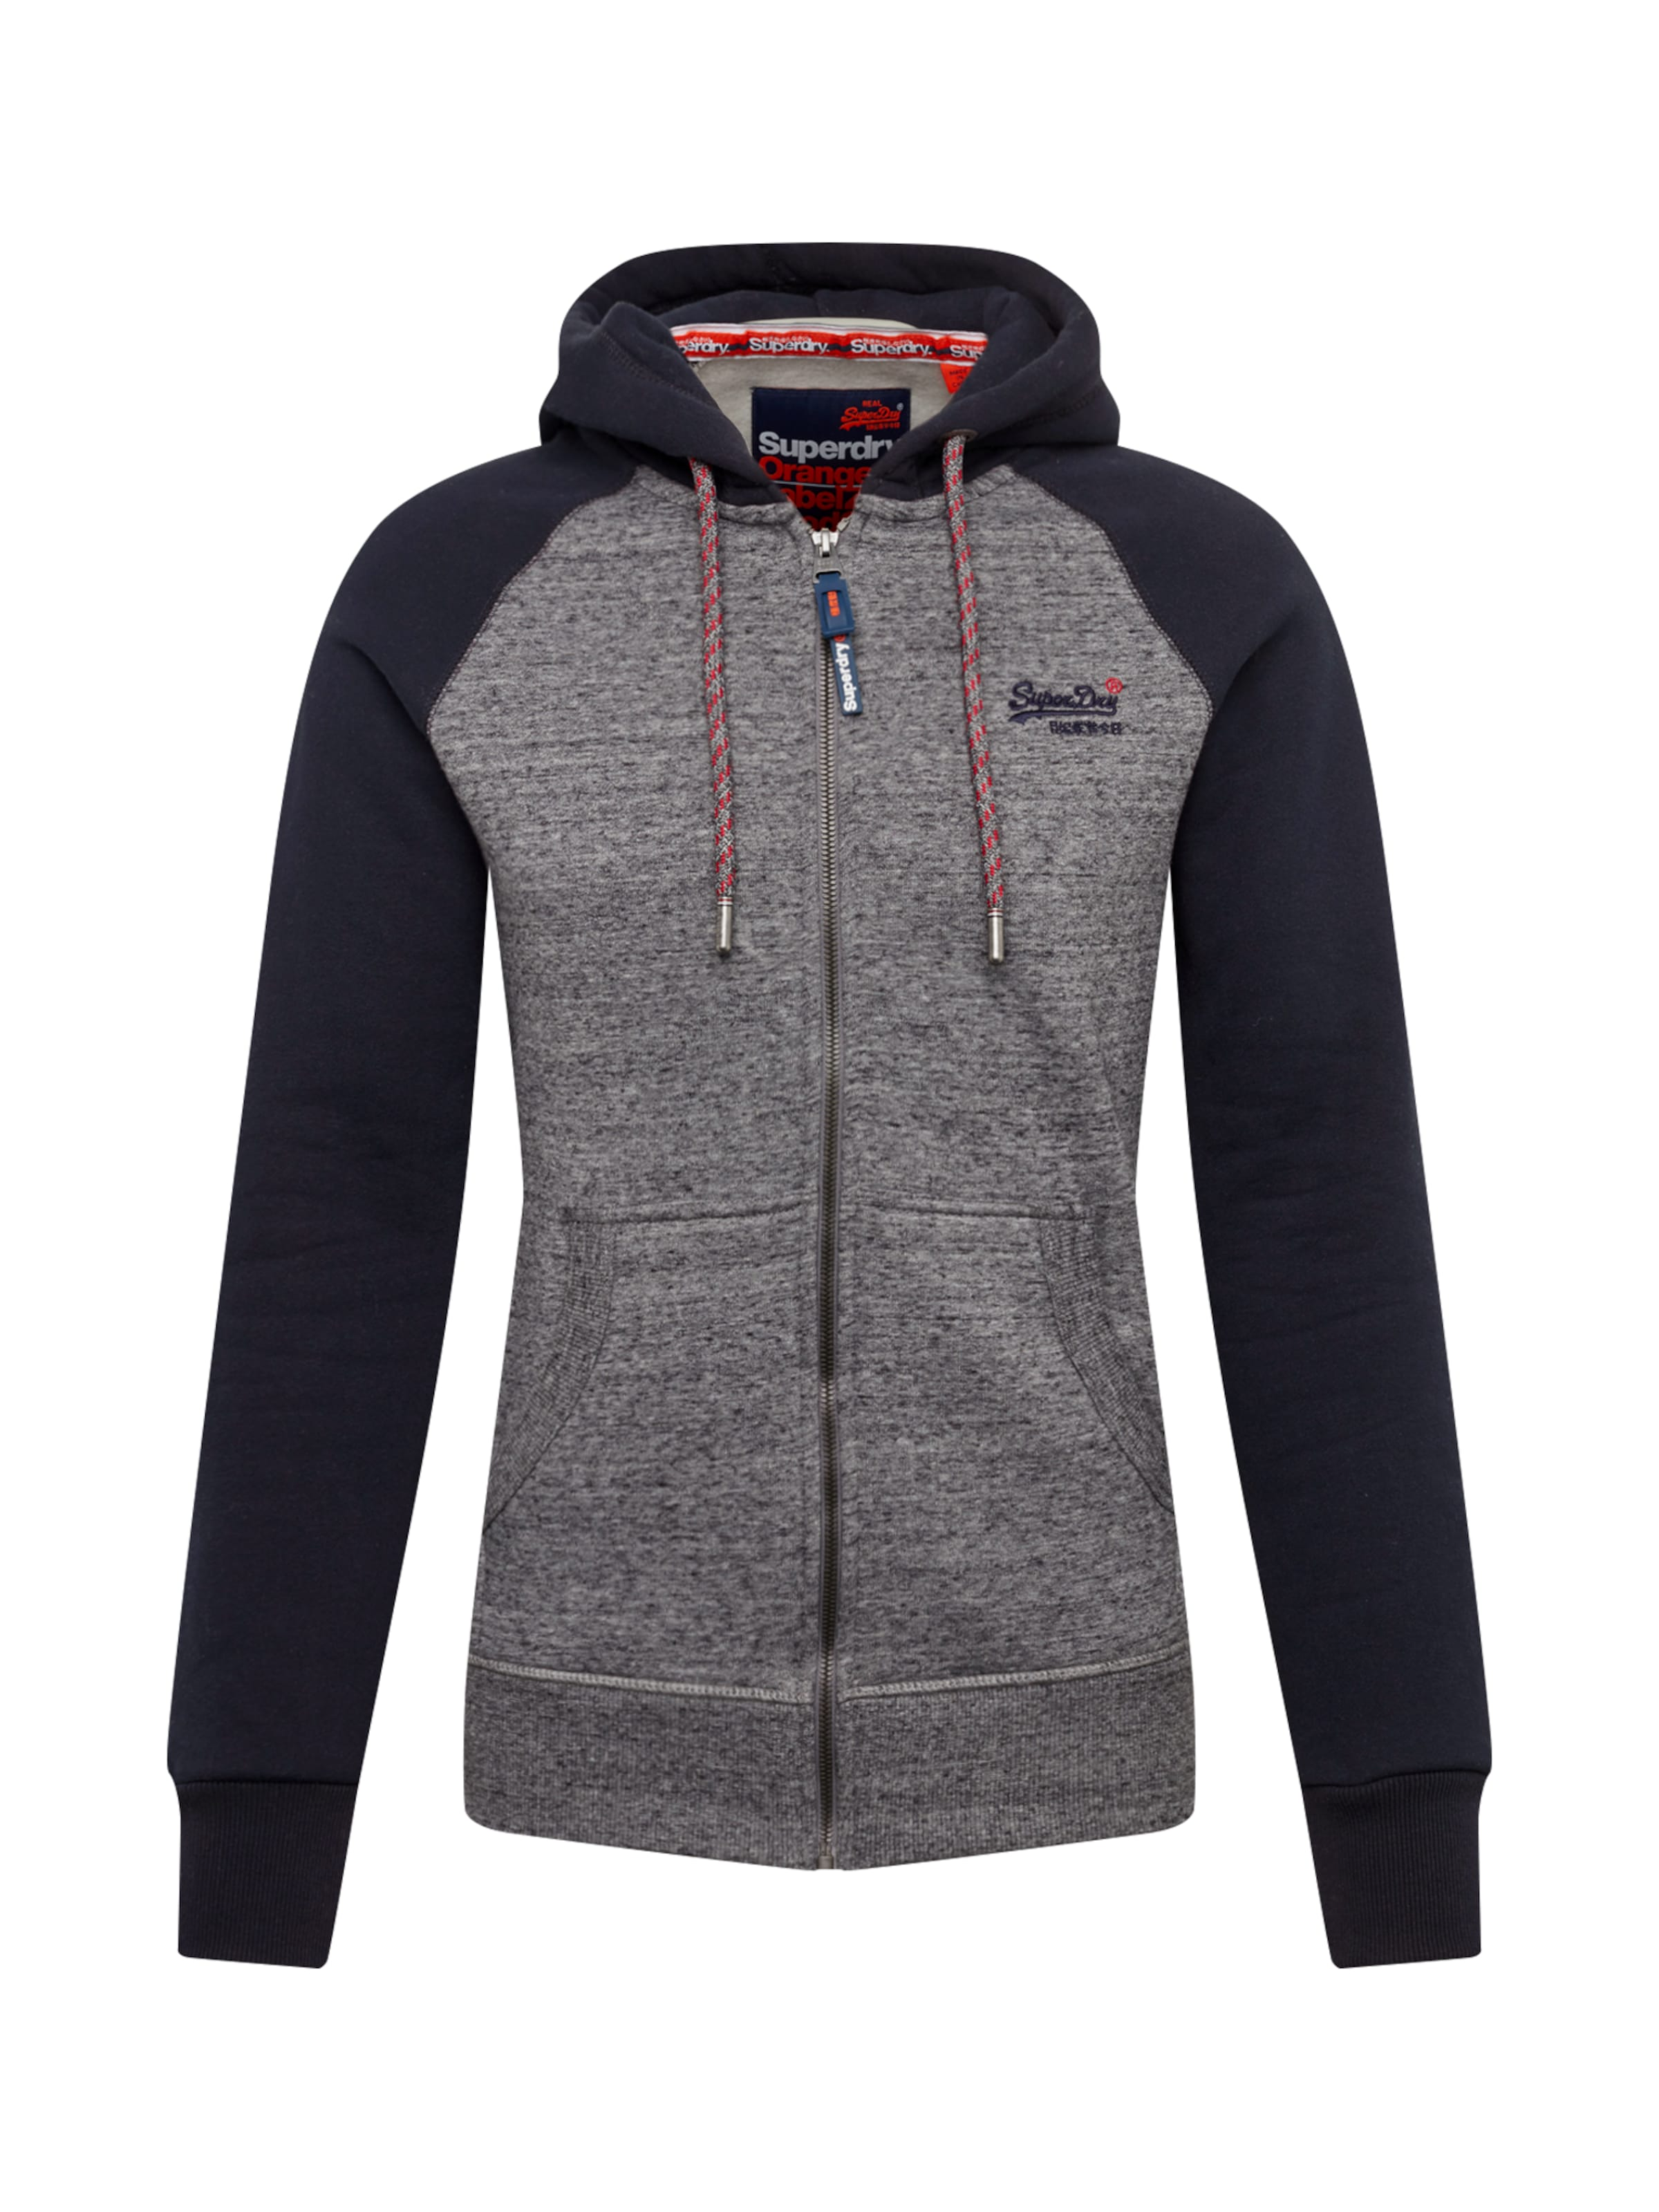 Raglan GrauSchwarz Zip In Hood' Sweatjacke 'orange Superdry Label CQhtrdsx